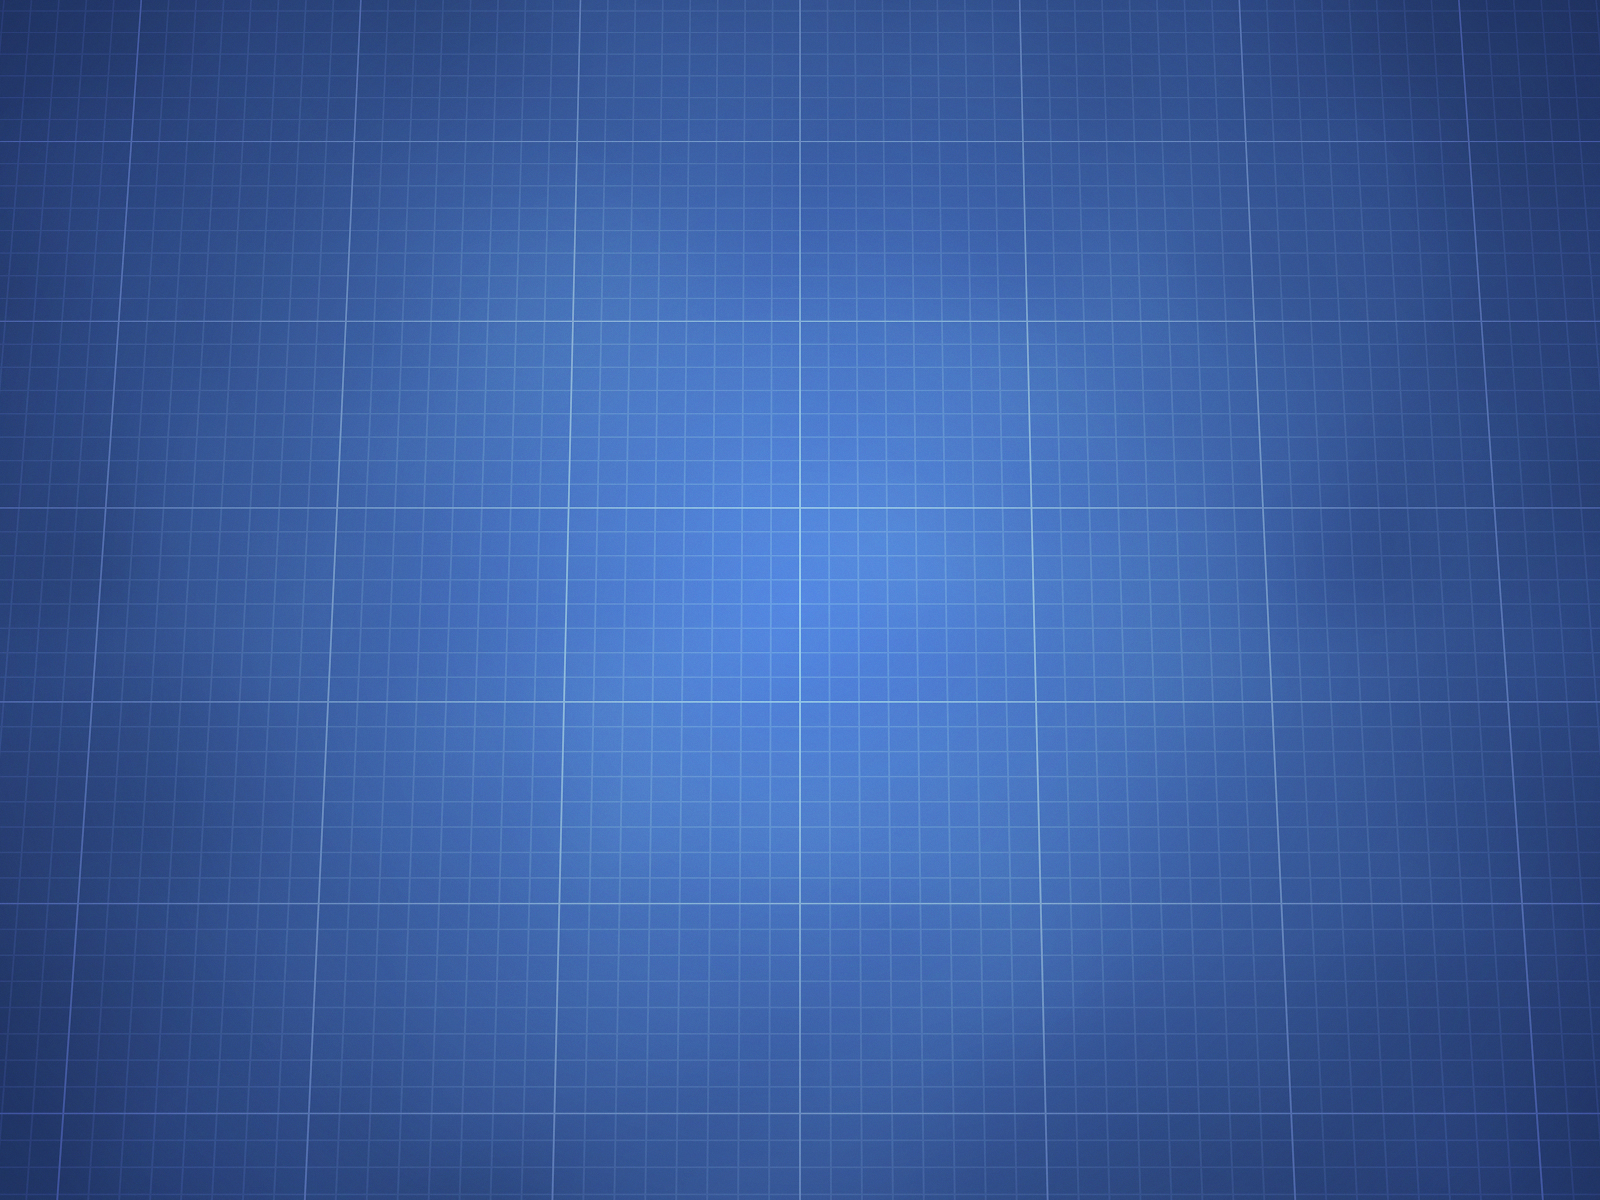 Pattern - Squares  - Blue Wallpaper